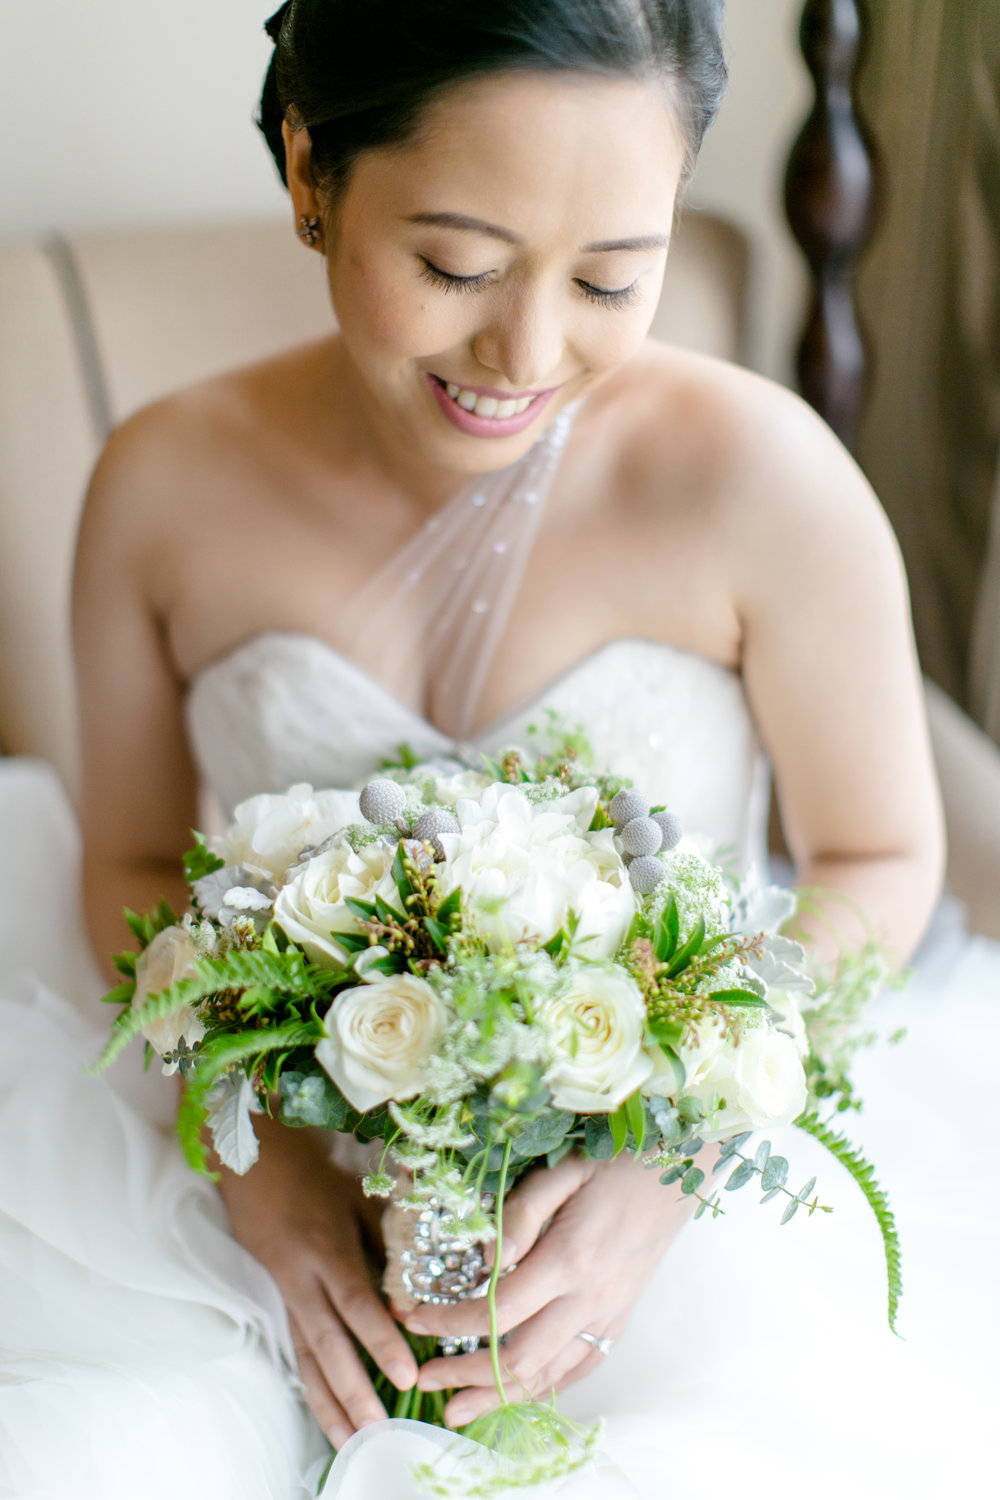 Bridal Bouquet by Vatel Manila